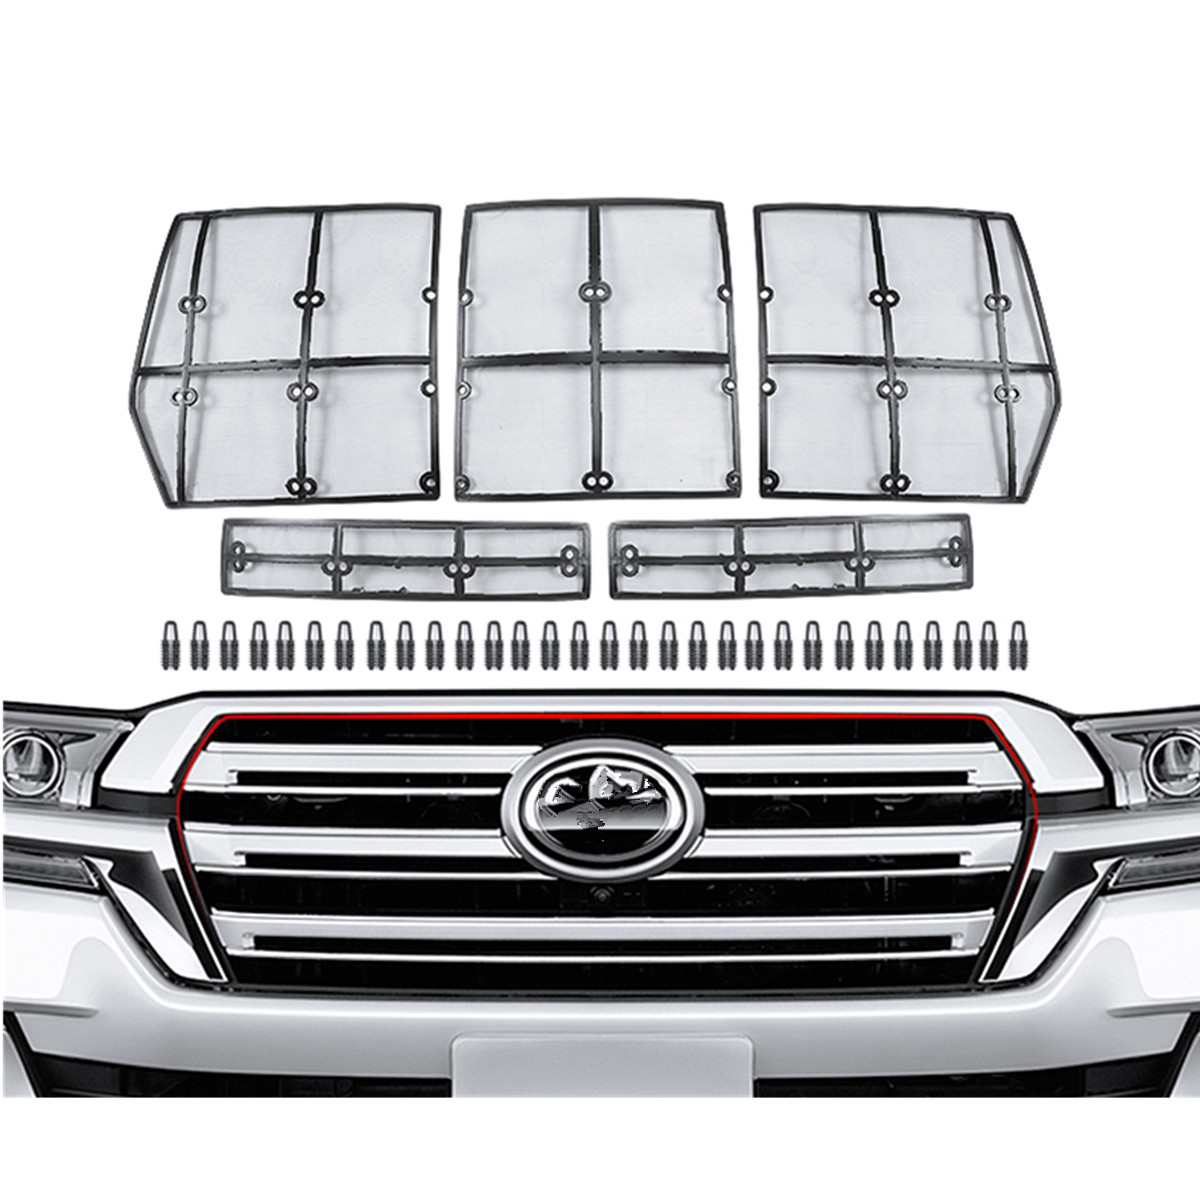 Car Front Grill Insect Net for Toyota Land Cruiser 200 LC200 Fj200 2008 2009 2010 2011